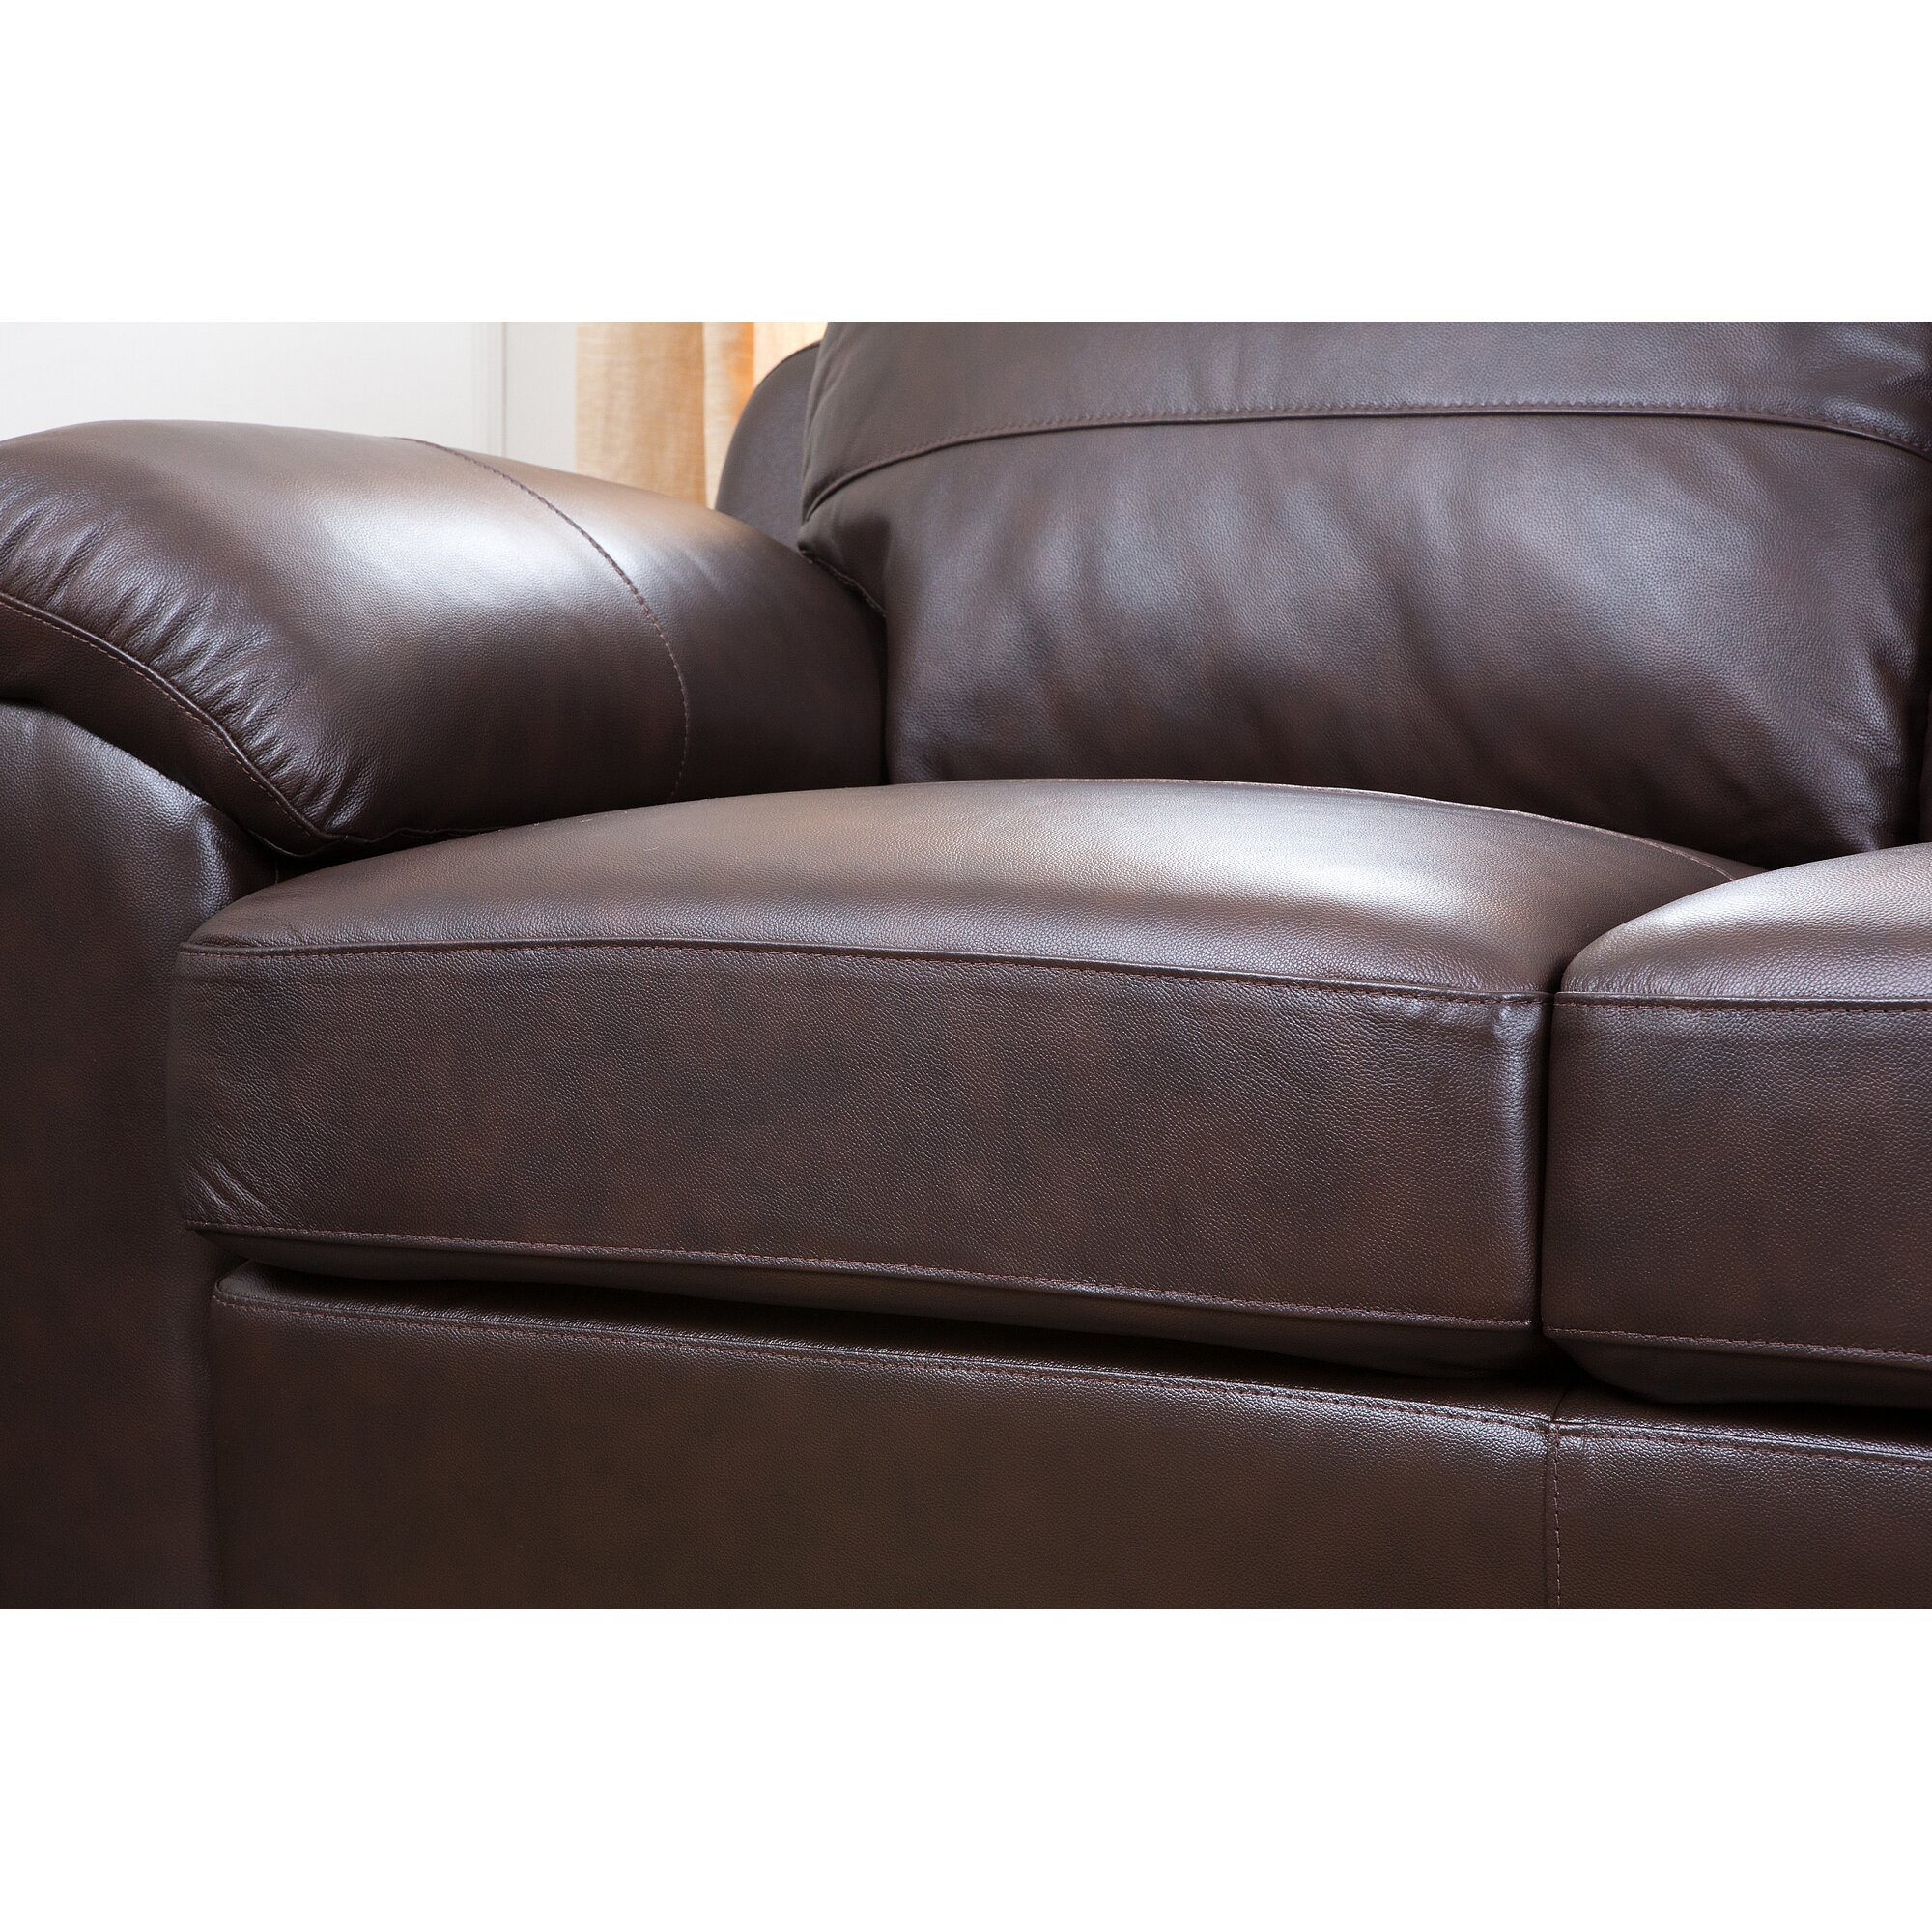 cosmopolitan 3 piece leather living room set by abbyson living